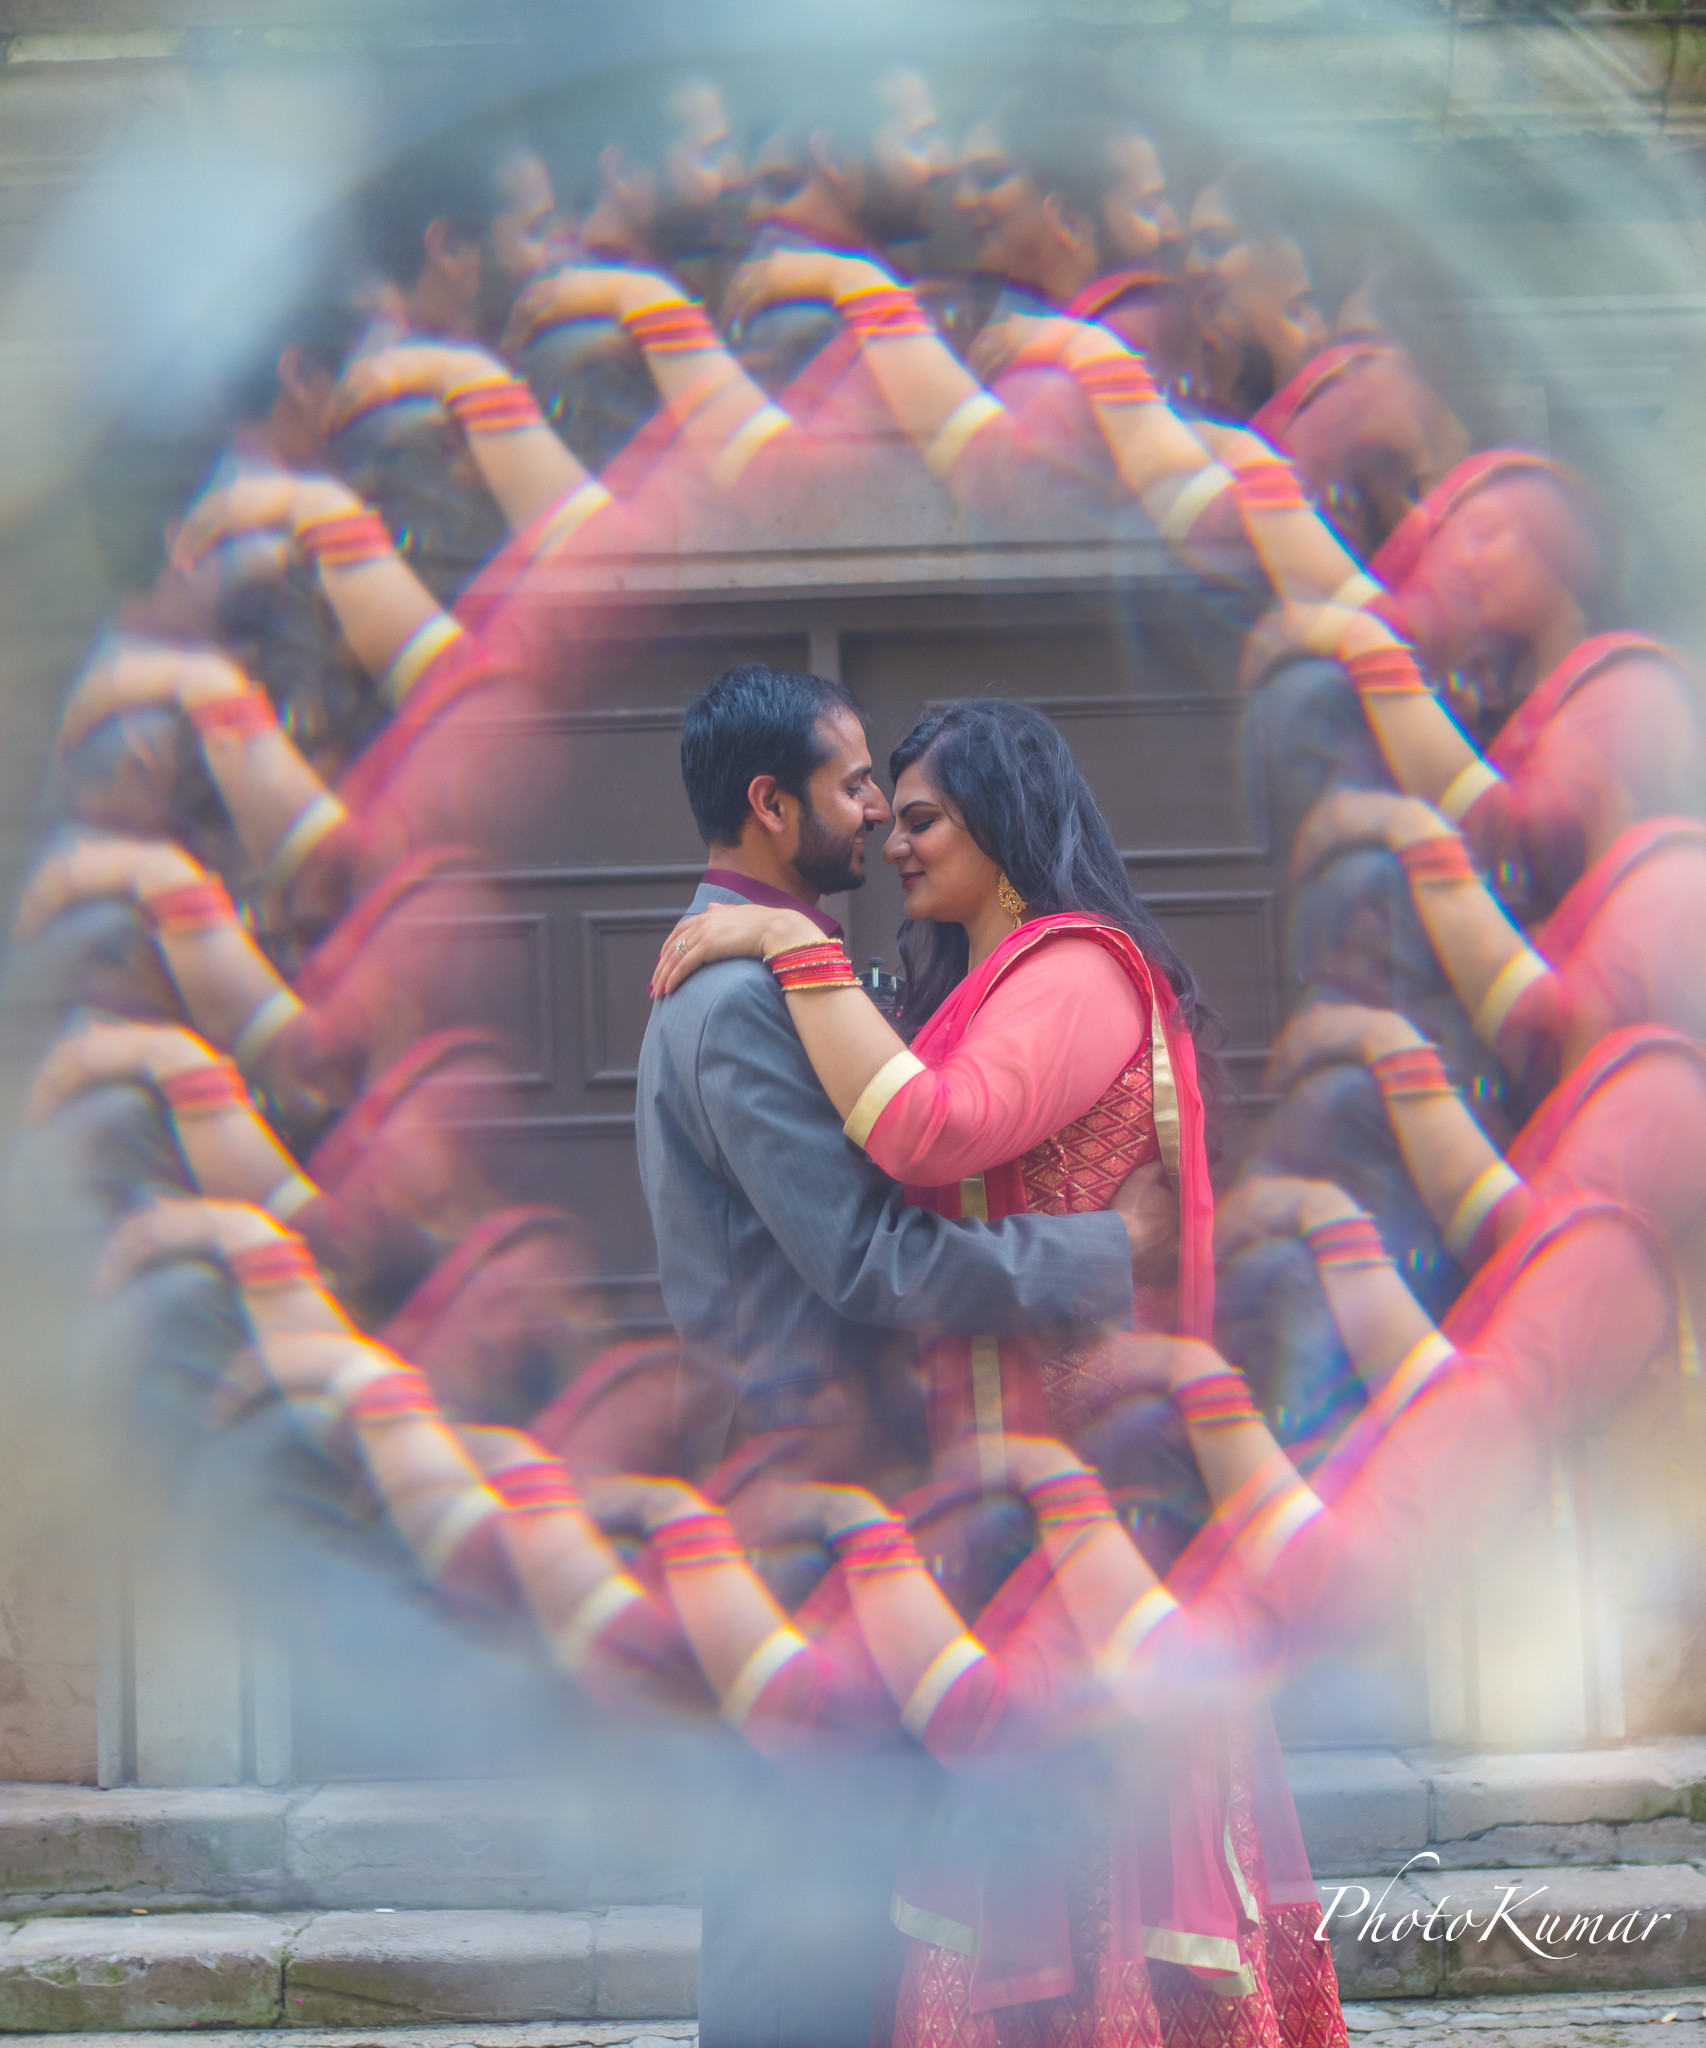 PhotoKumar-Anna and Riyaz-14.jpg